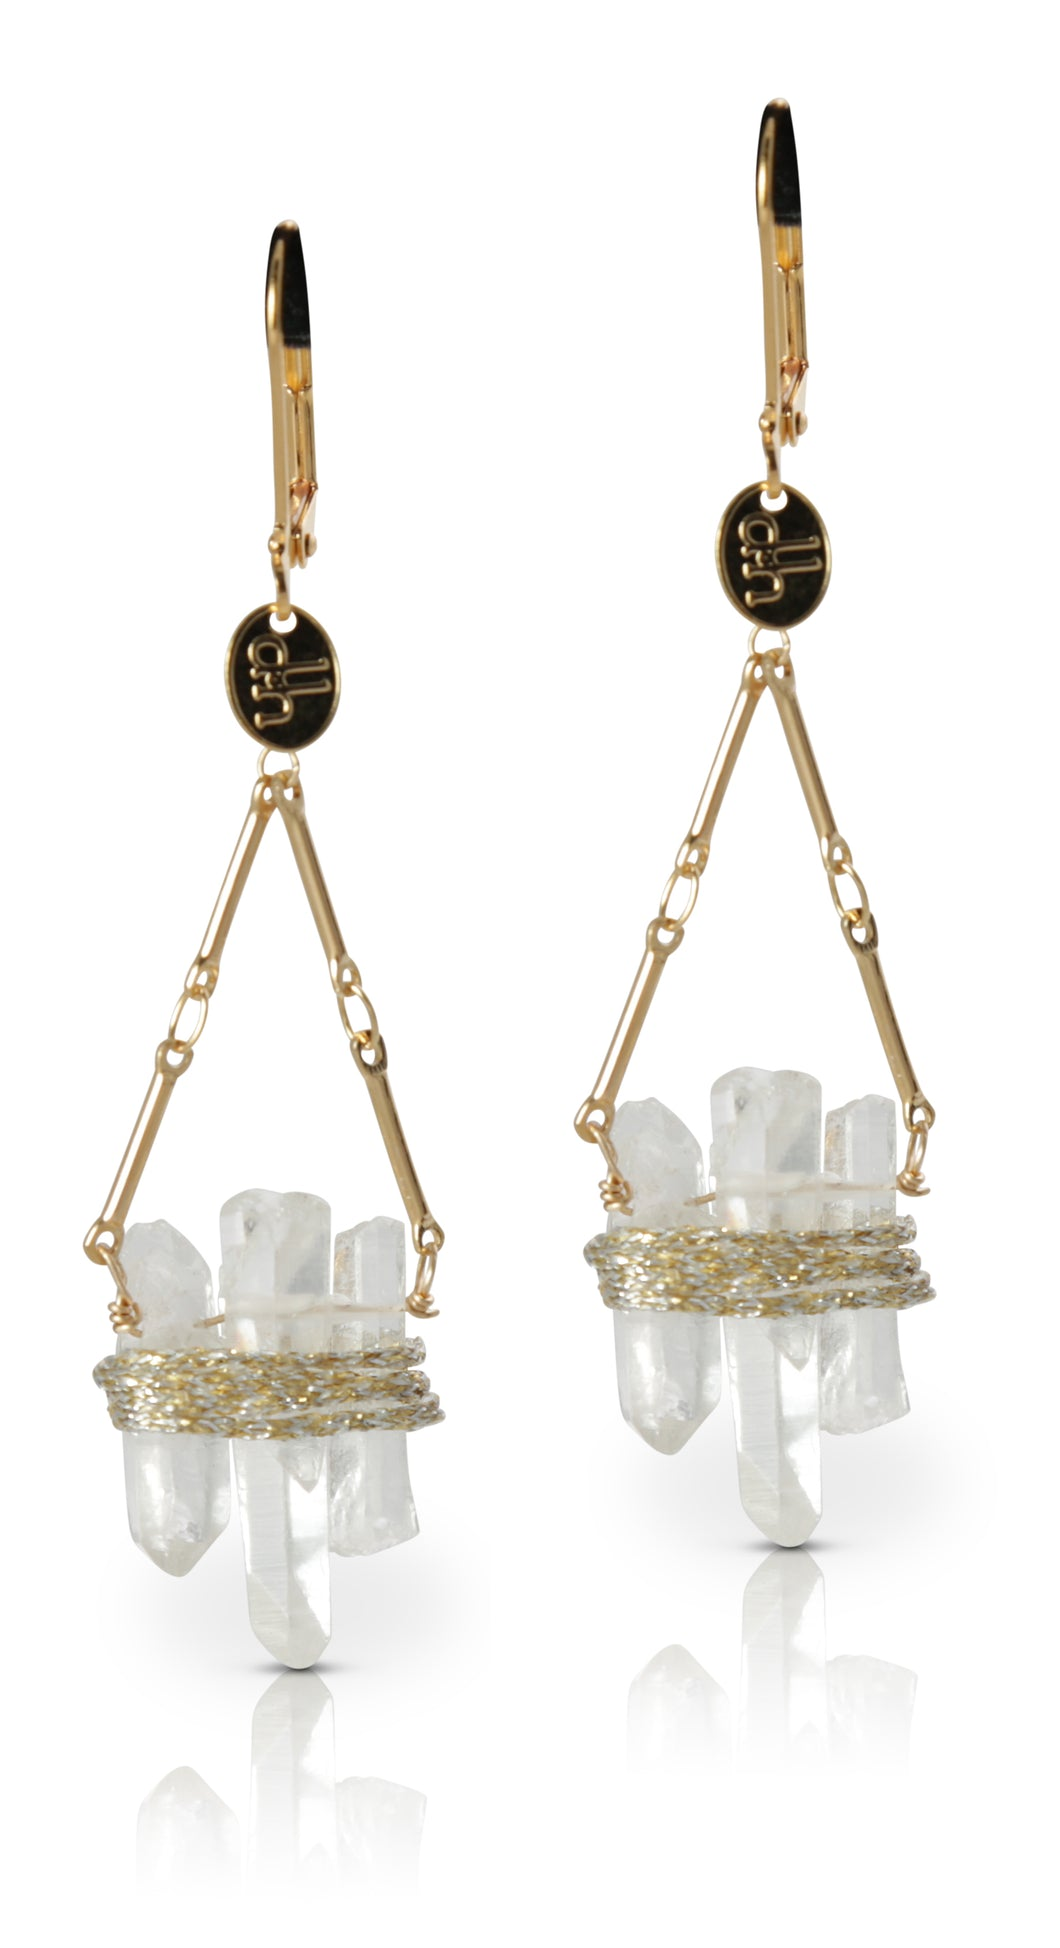 Chrysallis Crystal Quartz Earrings